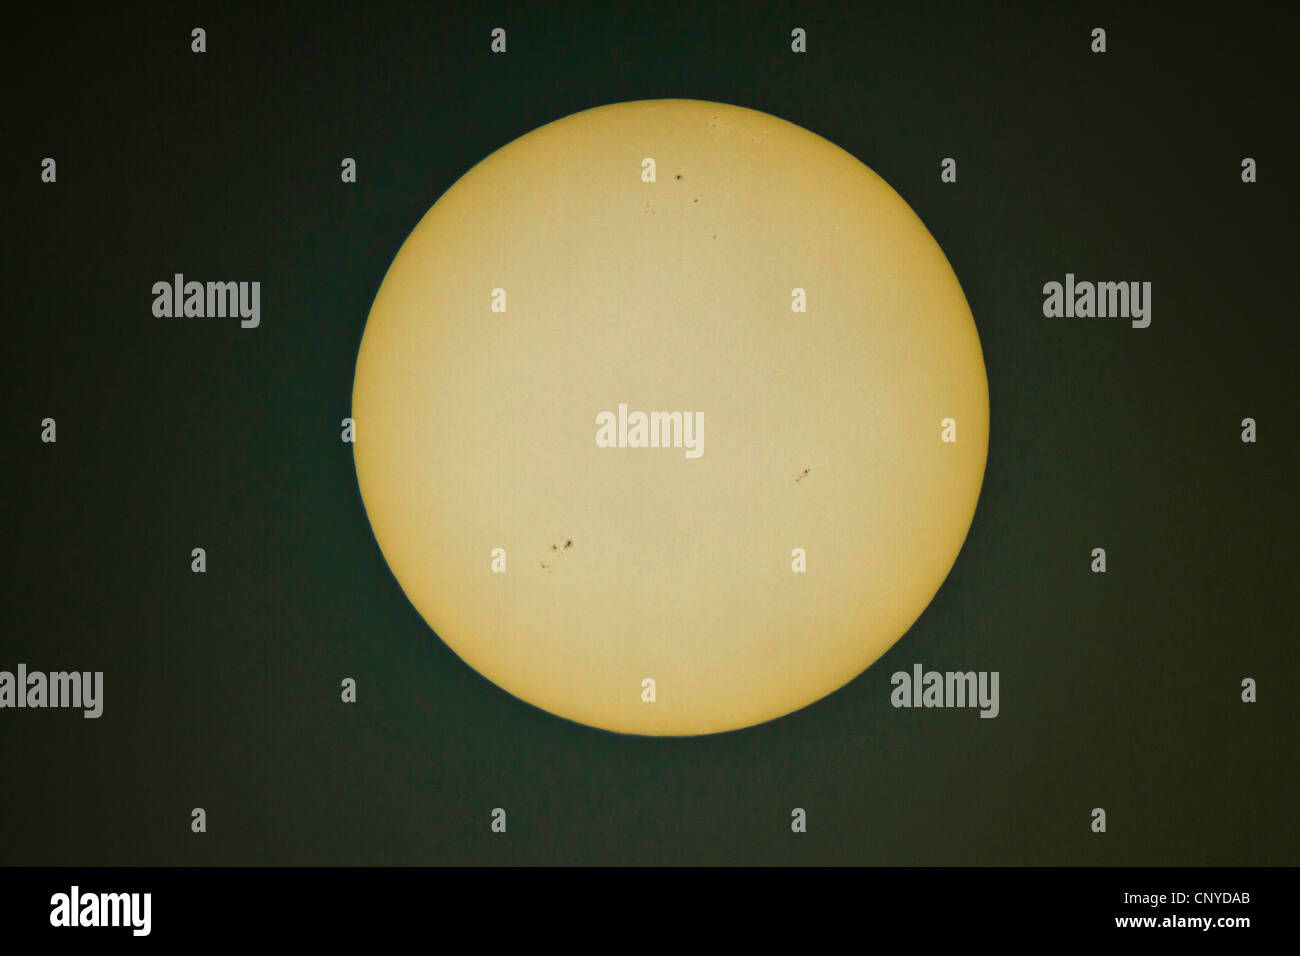 sun disc with sunspots - Stock Image